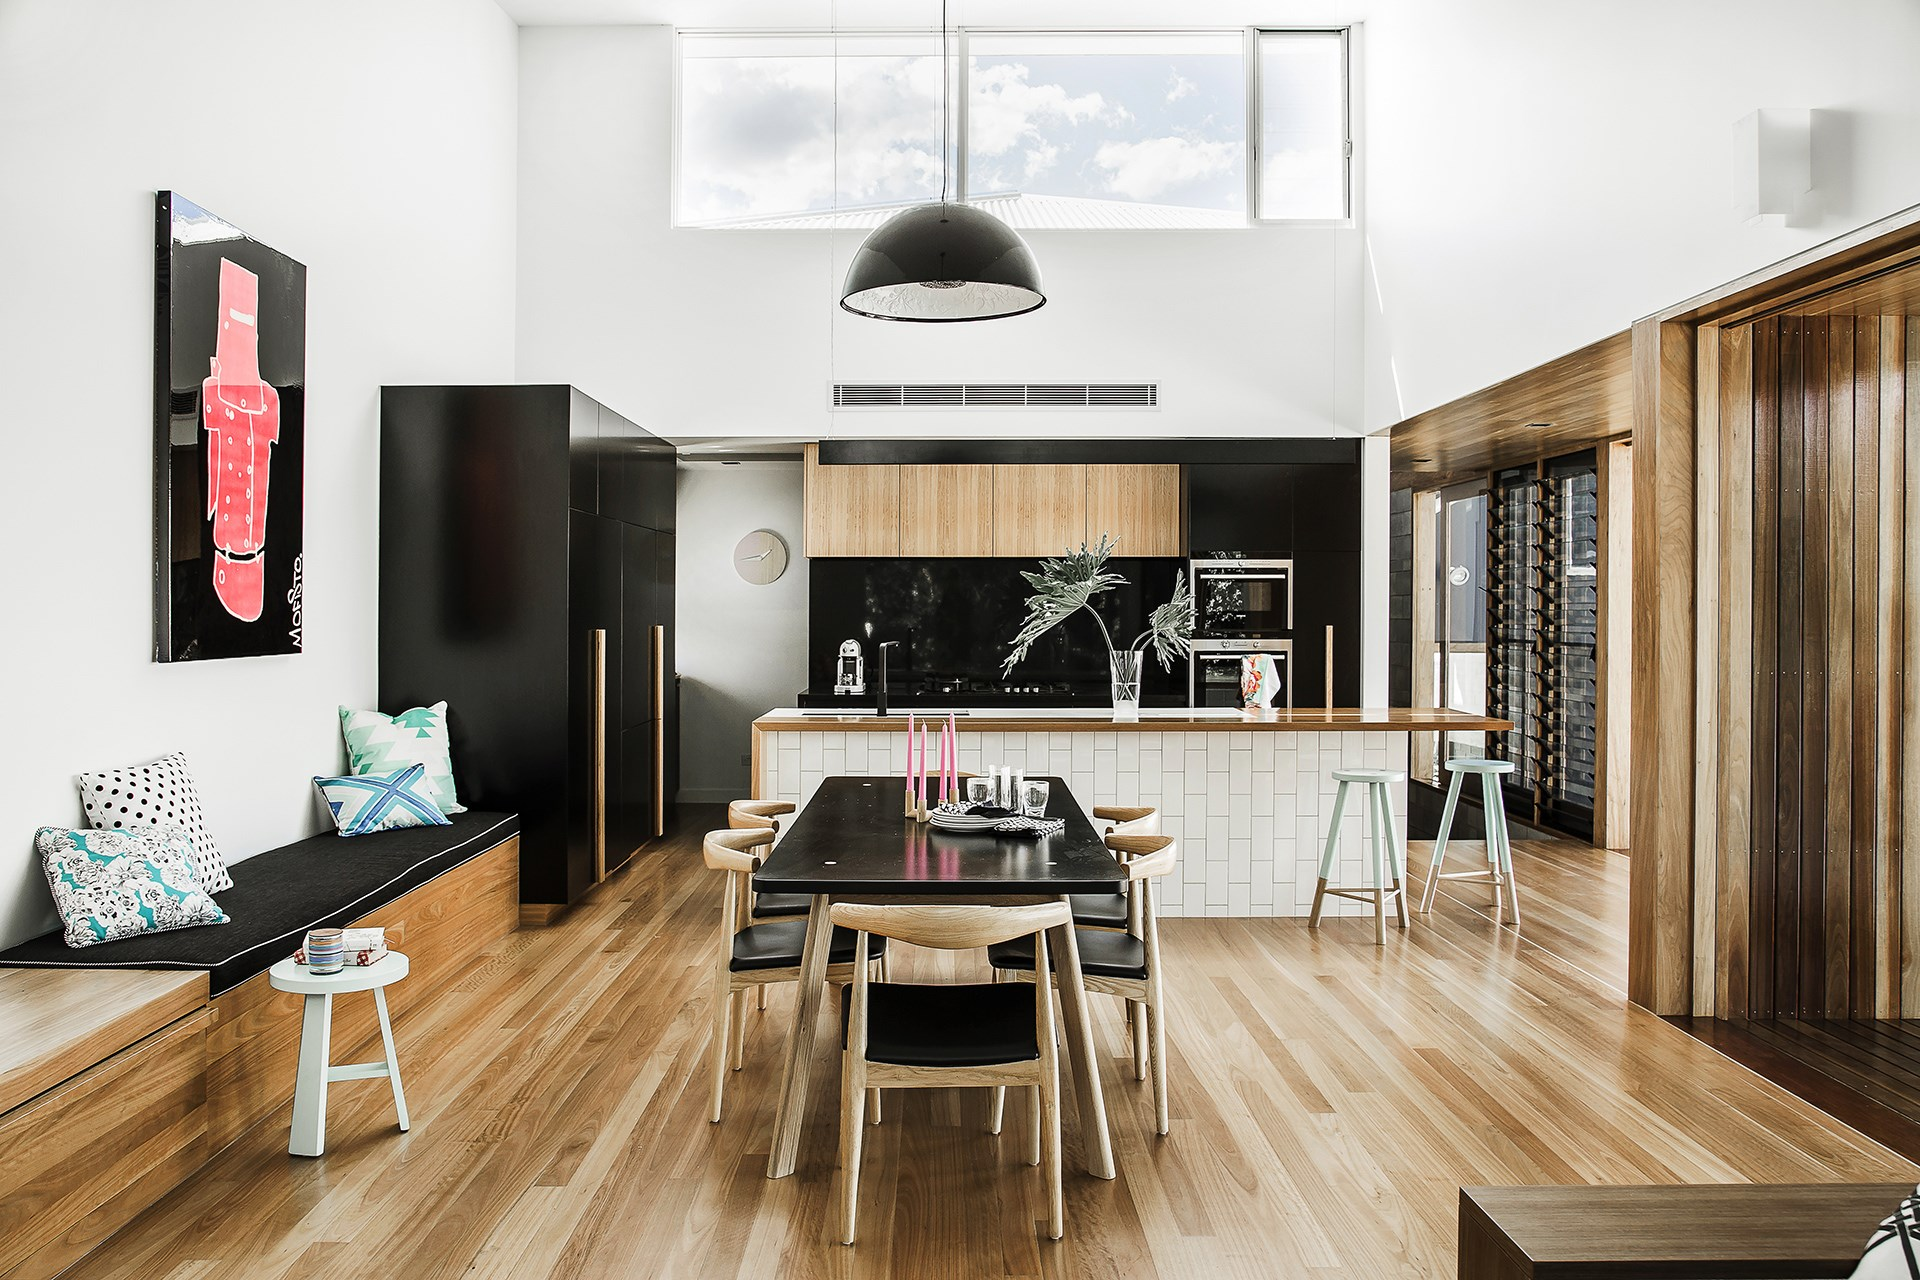 """We were after a really dramatic kitchen,"" says homeowner and interior designer Laura Stevenson. Soaring ceilings meant that the open-plan kitchen in this [contempoary family home](http://www.homestolove.com.au/gallery-laura-and-alistairs-contemporary-family-home-1719/?utm_campaign=supplier/